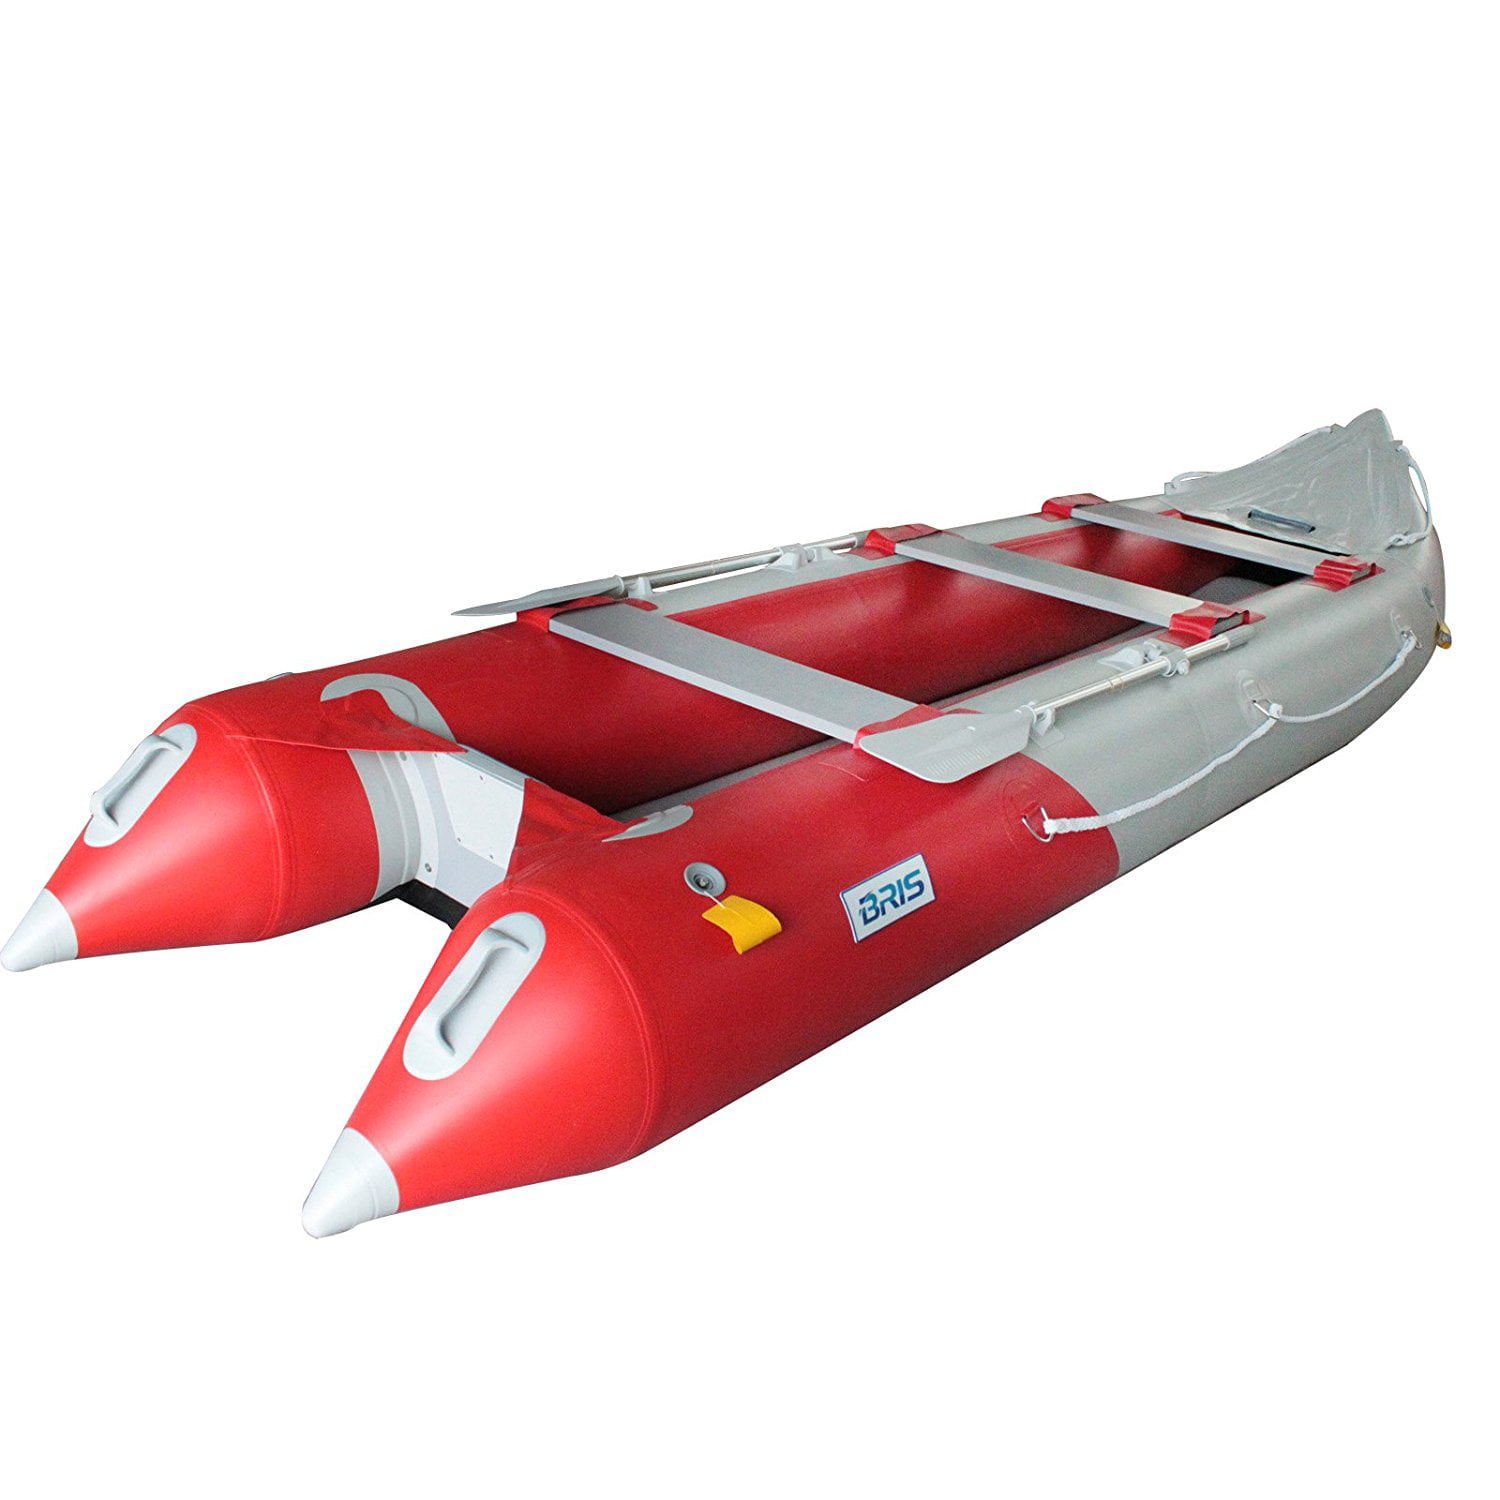 Click here to buy 14.1Ft Inflatable boat Inflatable Kayak Canoe Tender Boat by BRIS.